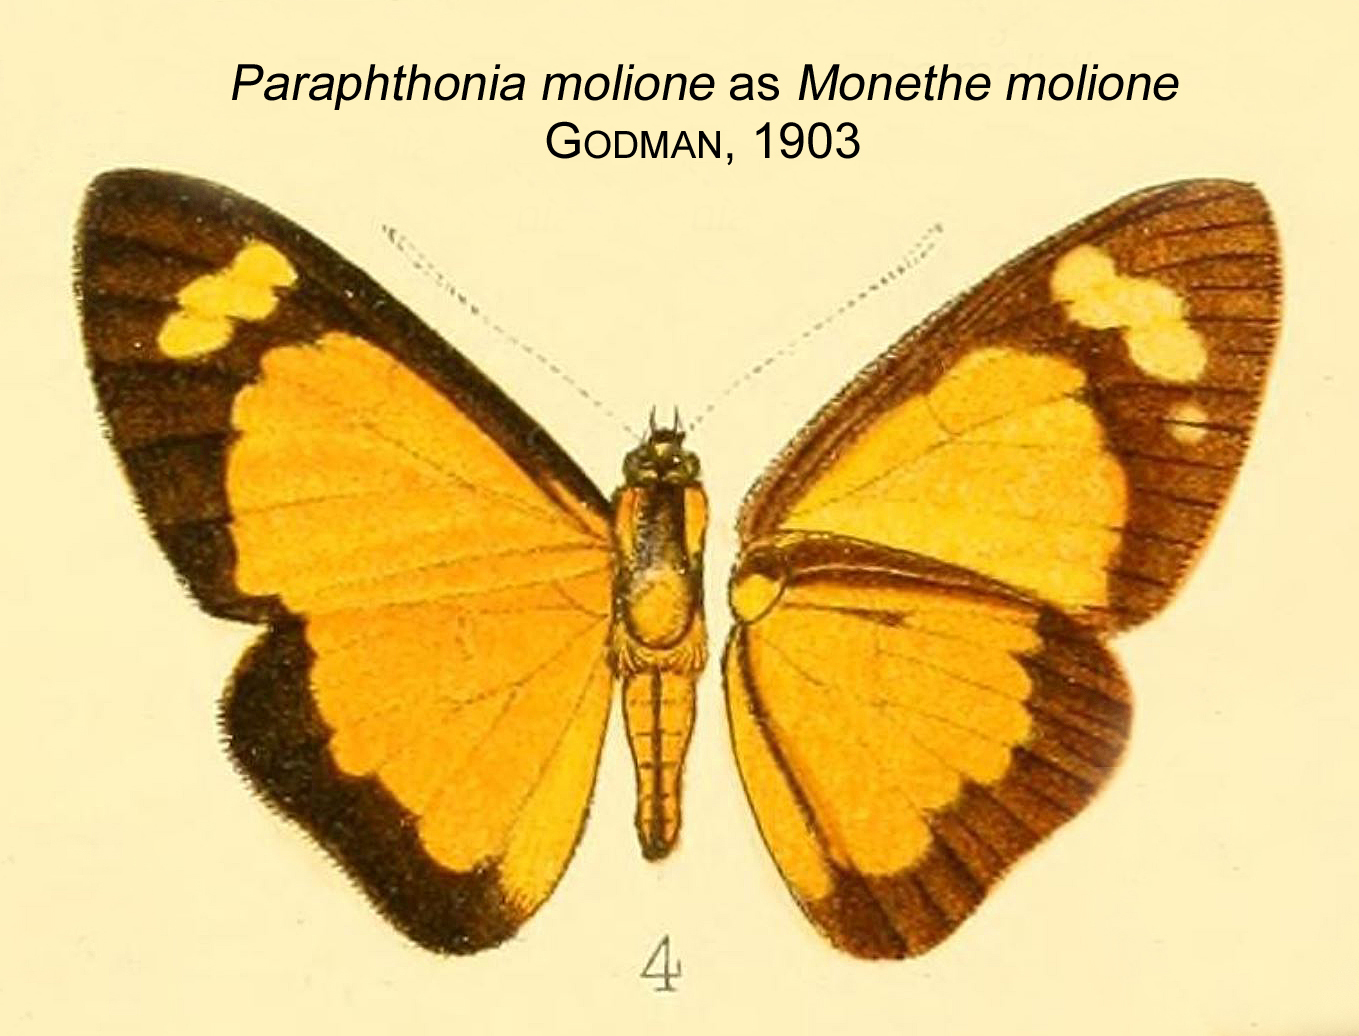 Image of Paraphthonia